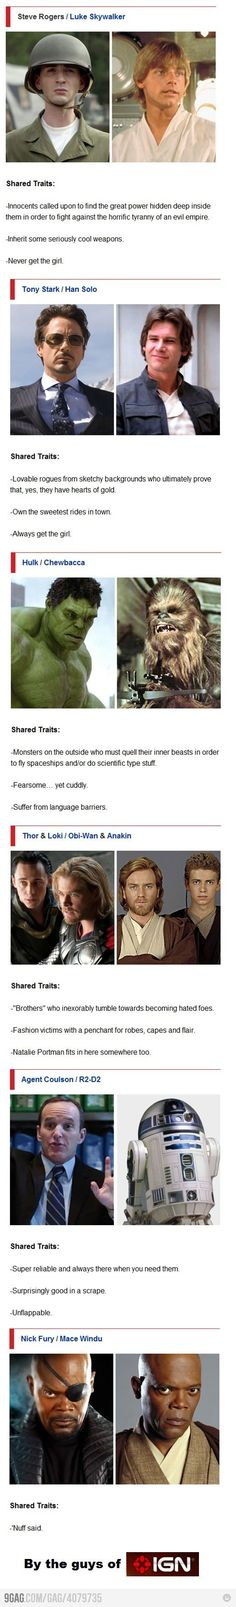 Avengers vs. Star Wars